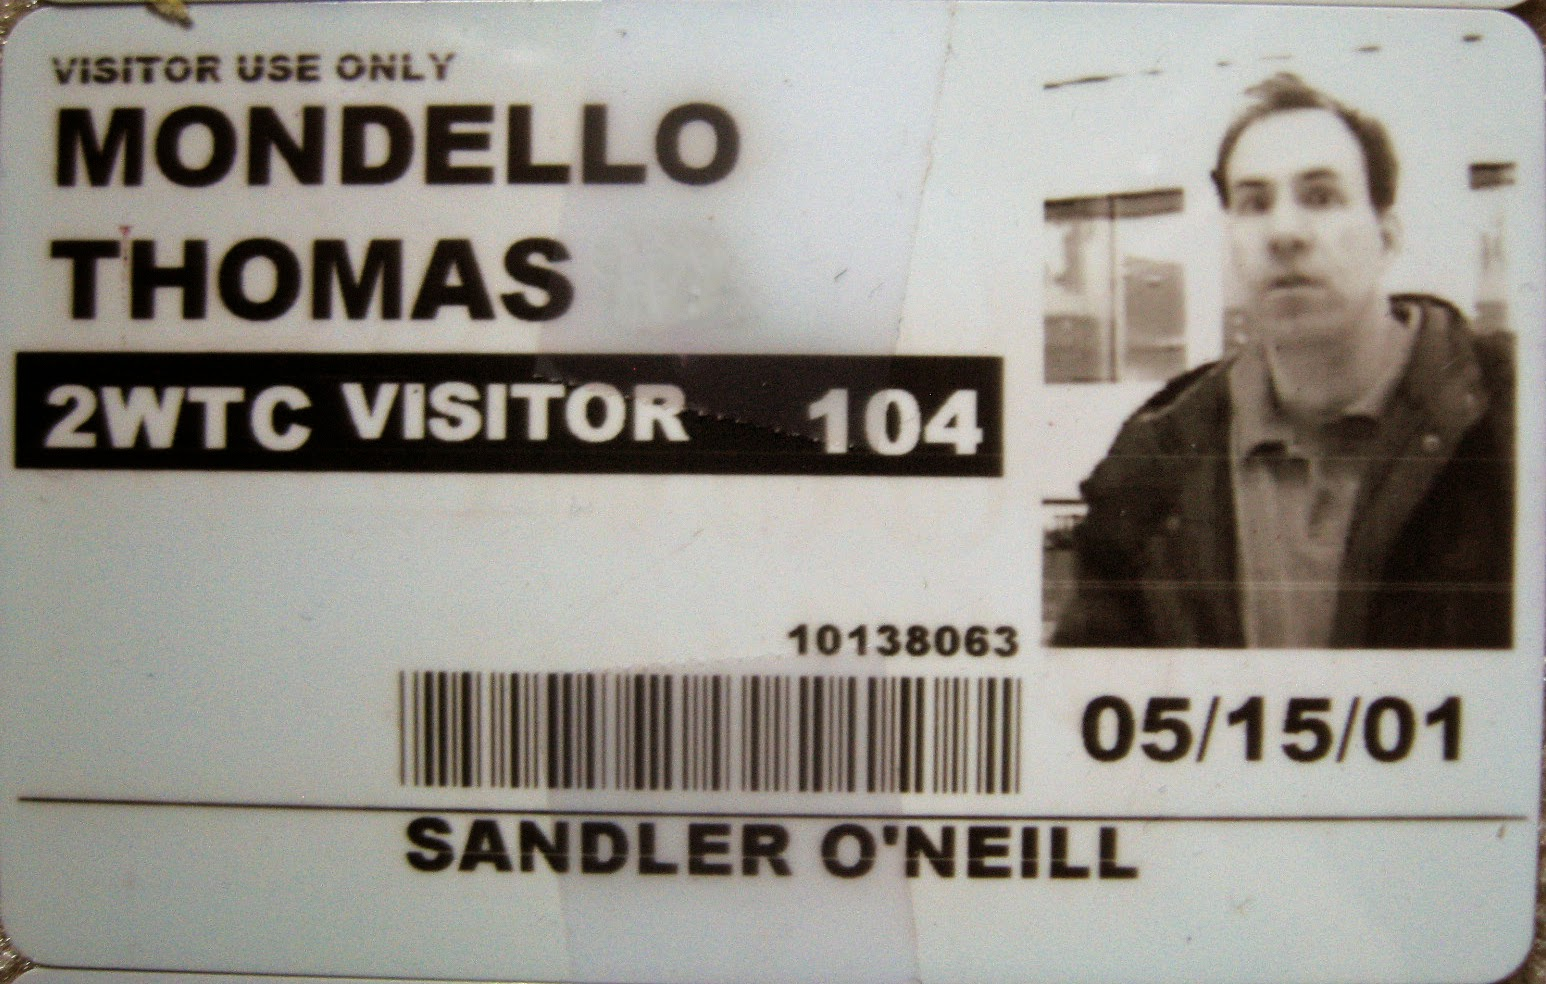 Tommy Mondello World Trade Center pass May 15, 2001